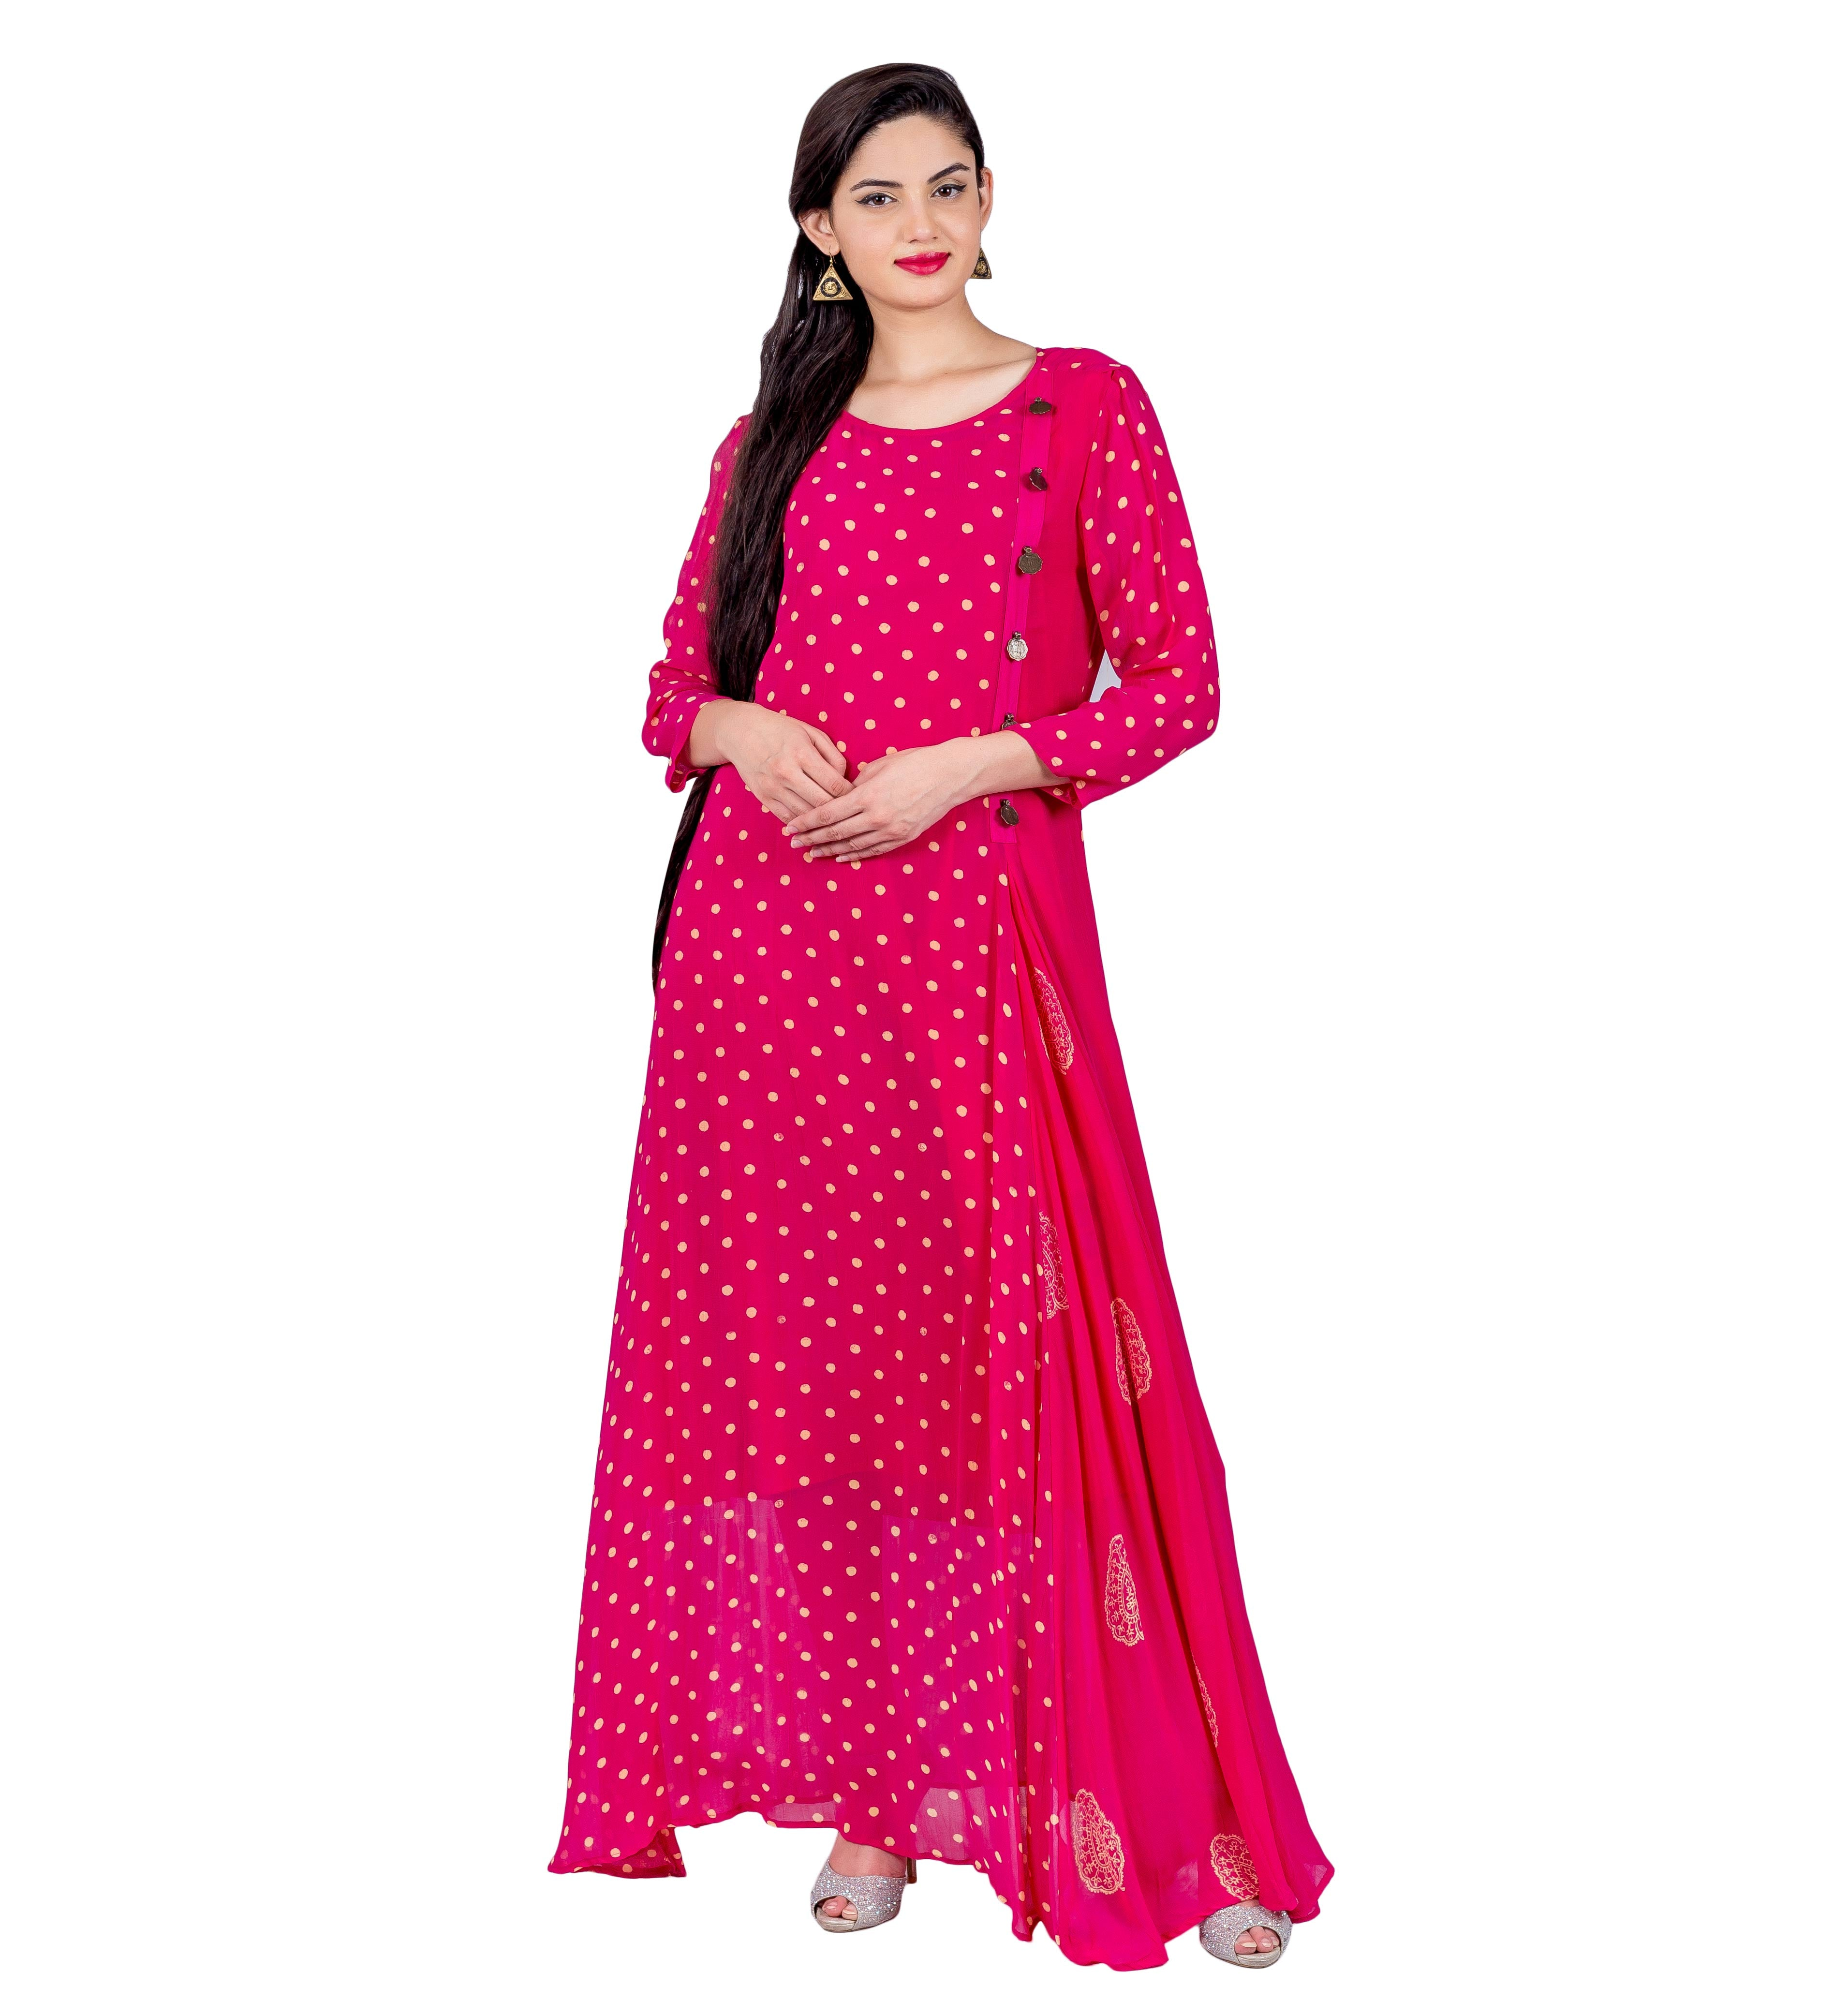 Fuchsia Hand Block Printed Indo Western Dress with Front Side Buttons